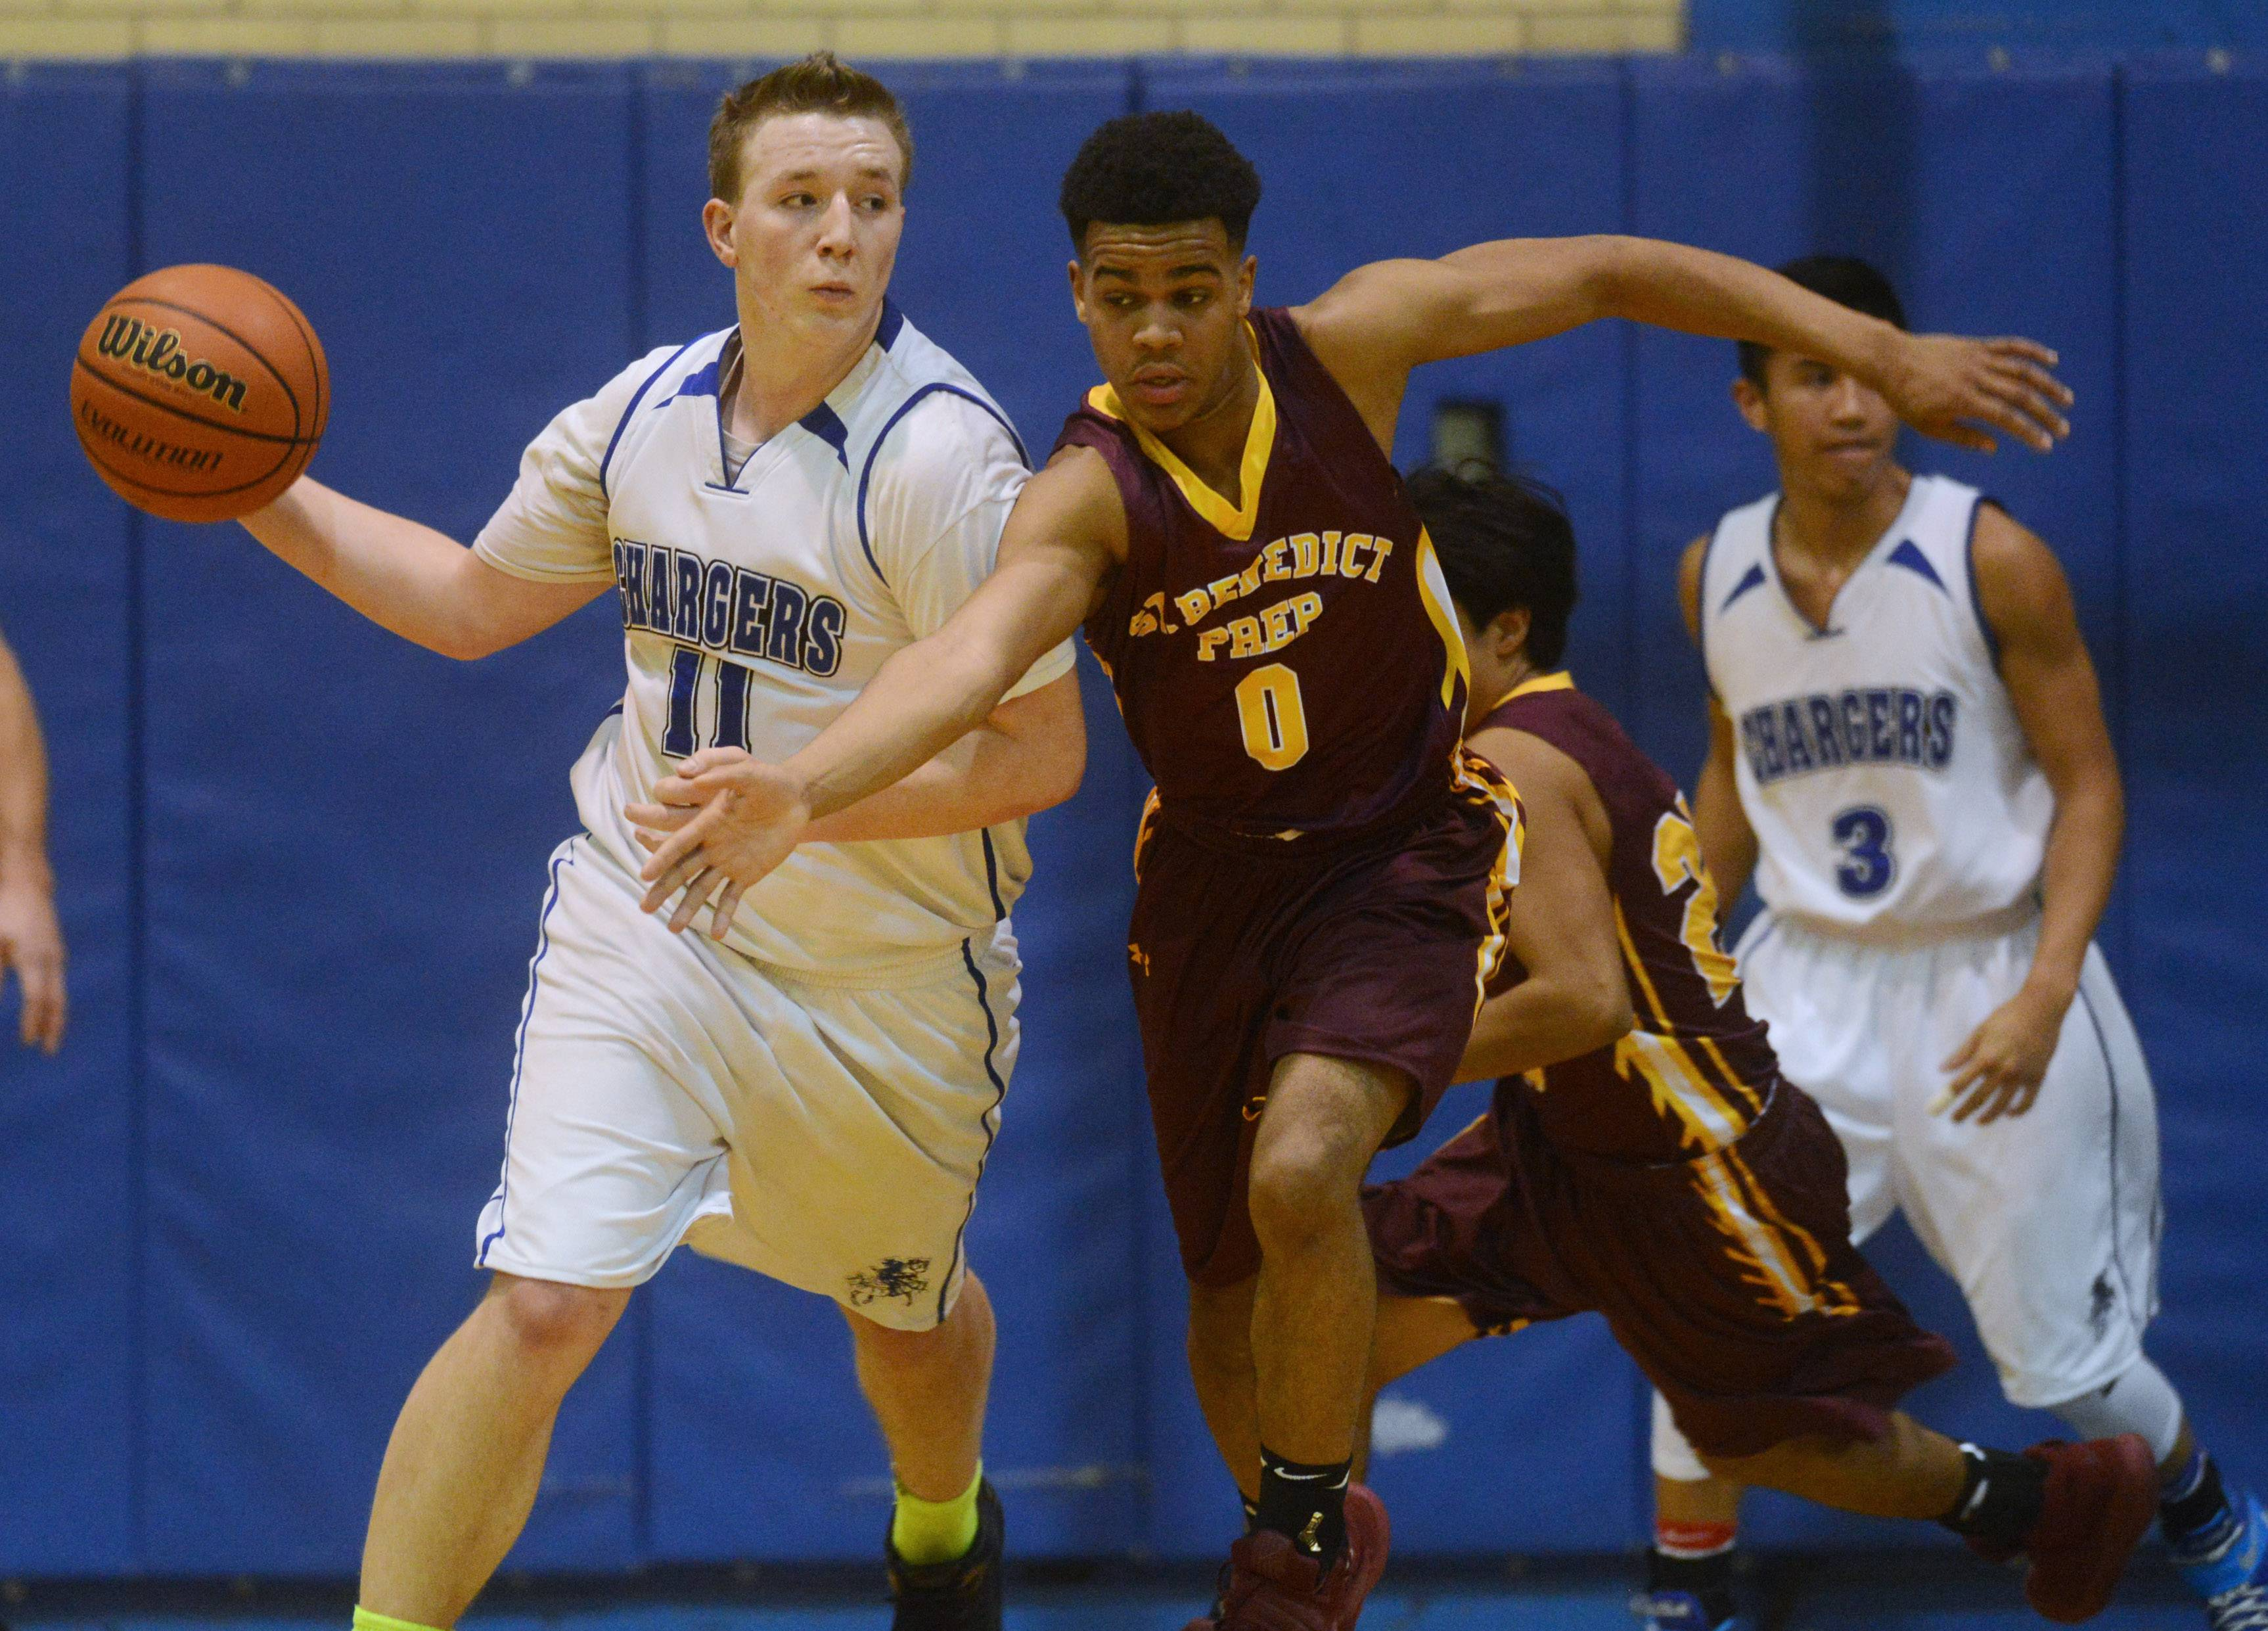 Christian Liberty Academy's Jimmy Cunningham makes a long pass as St. Benedict's Anthony Bradley defends during Wednesday's game in Arlington Heights.